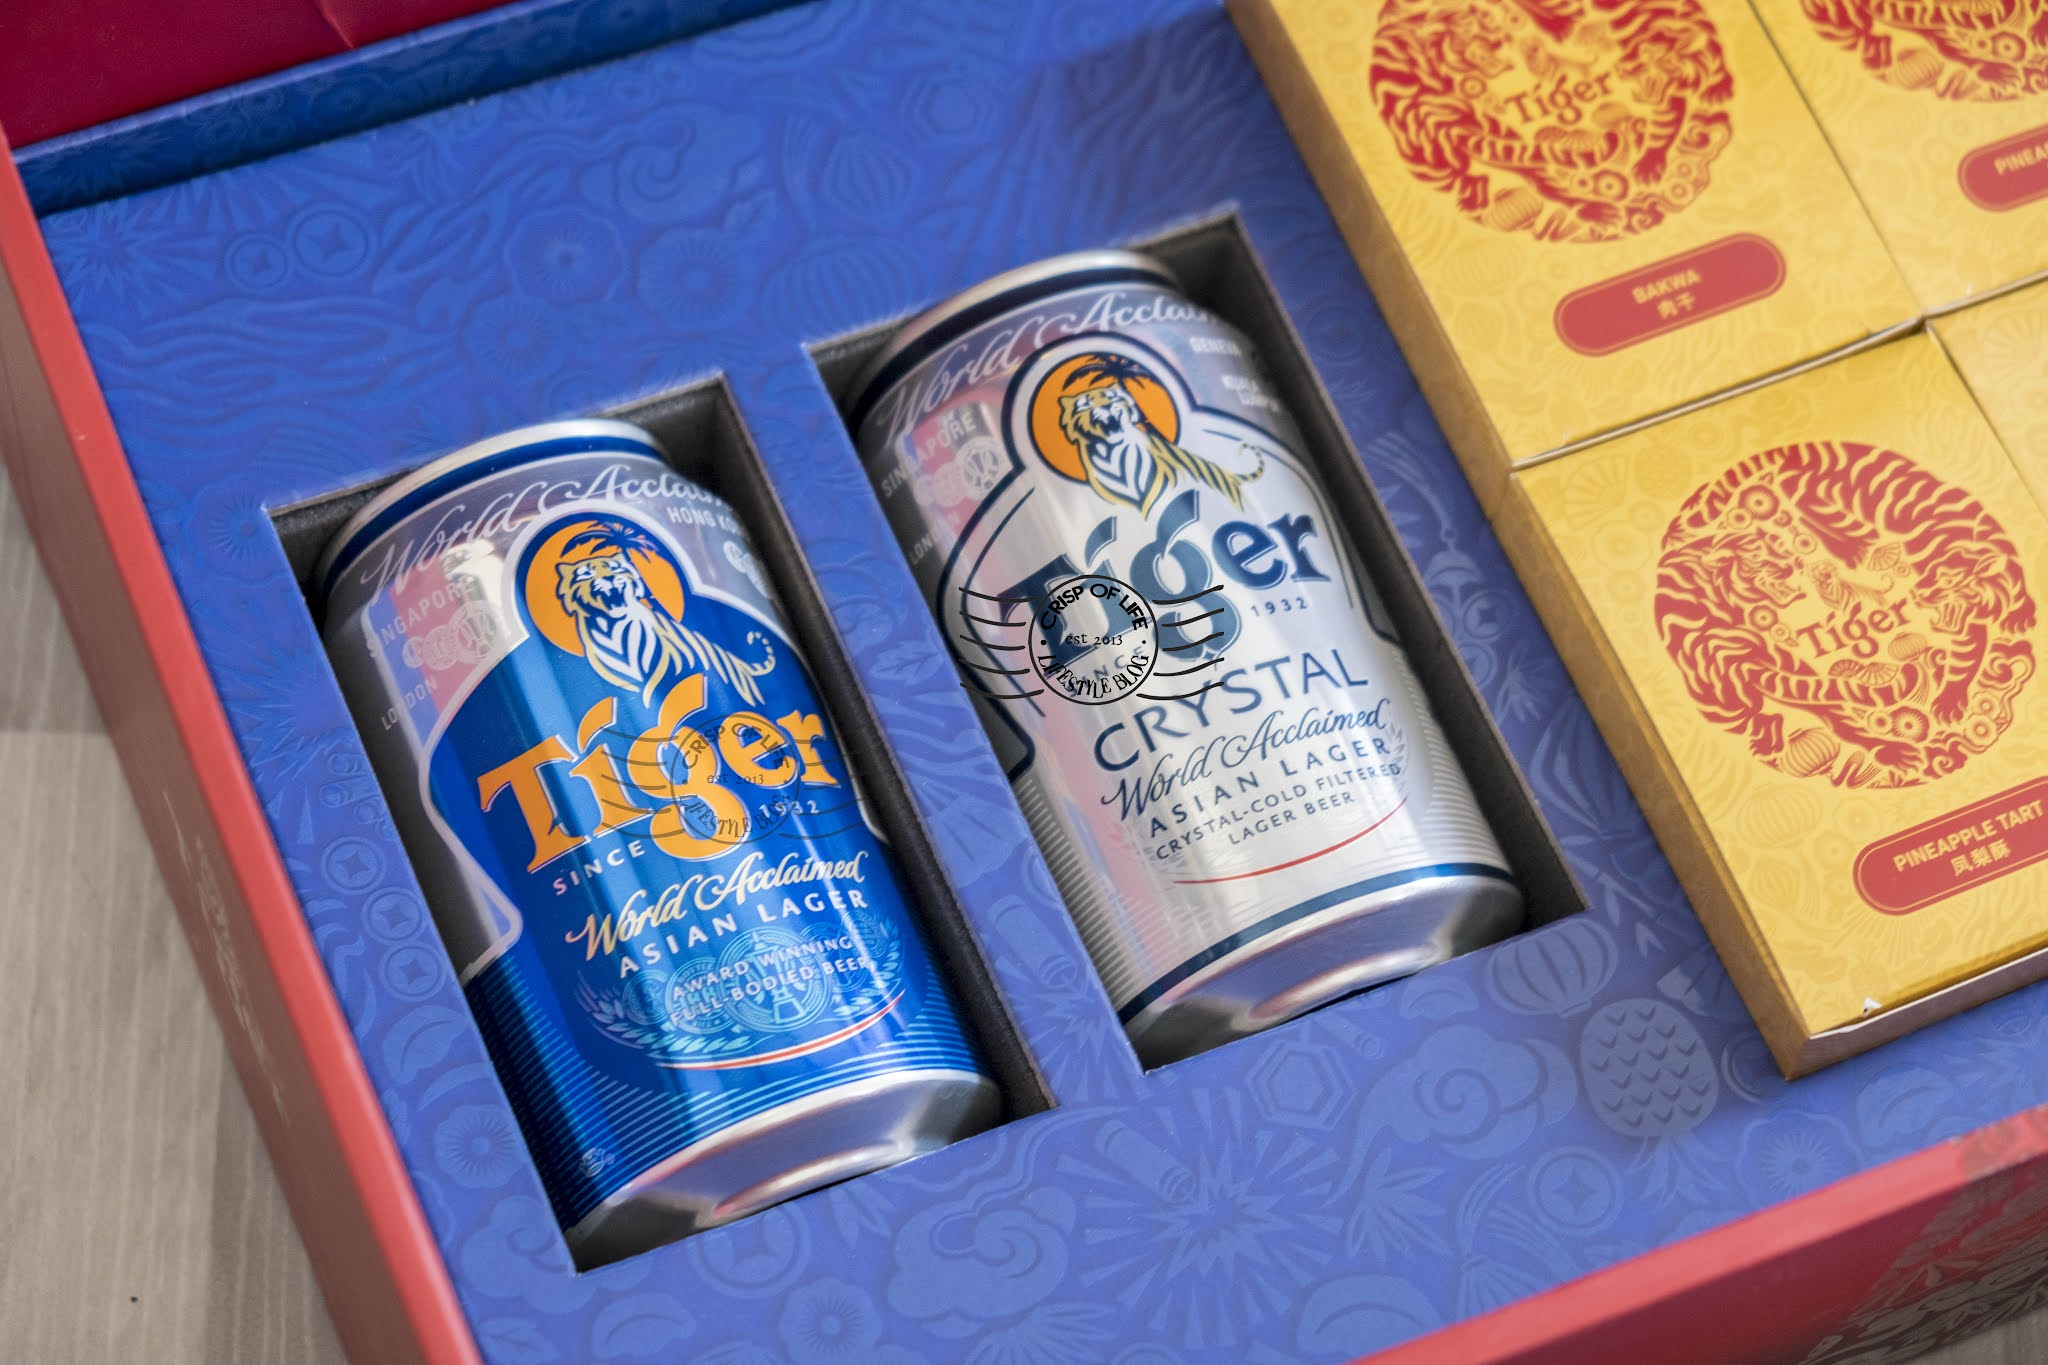 Collect Tiger Limited Edition ONG Cans, Guinness Gold Playing Cards and More!